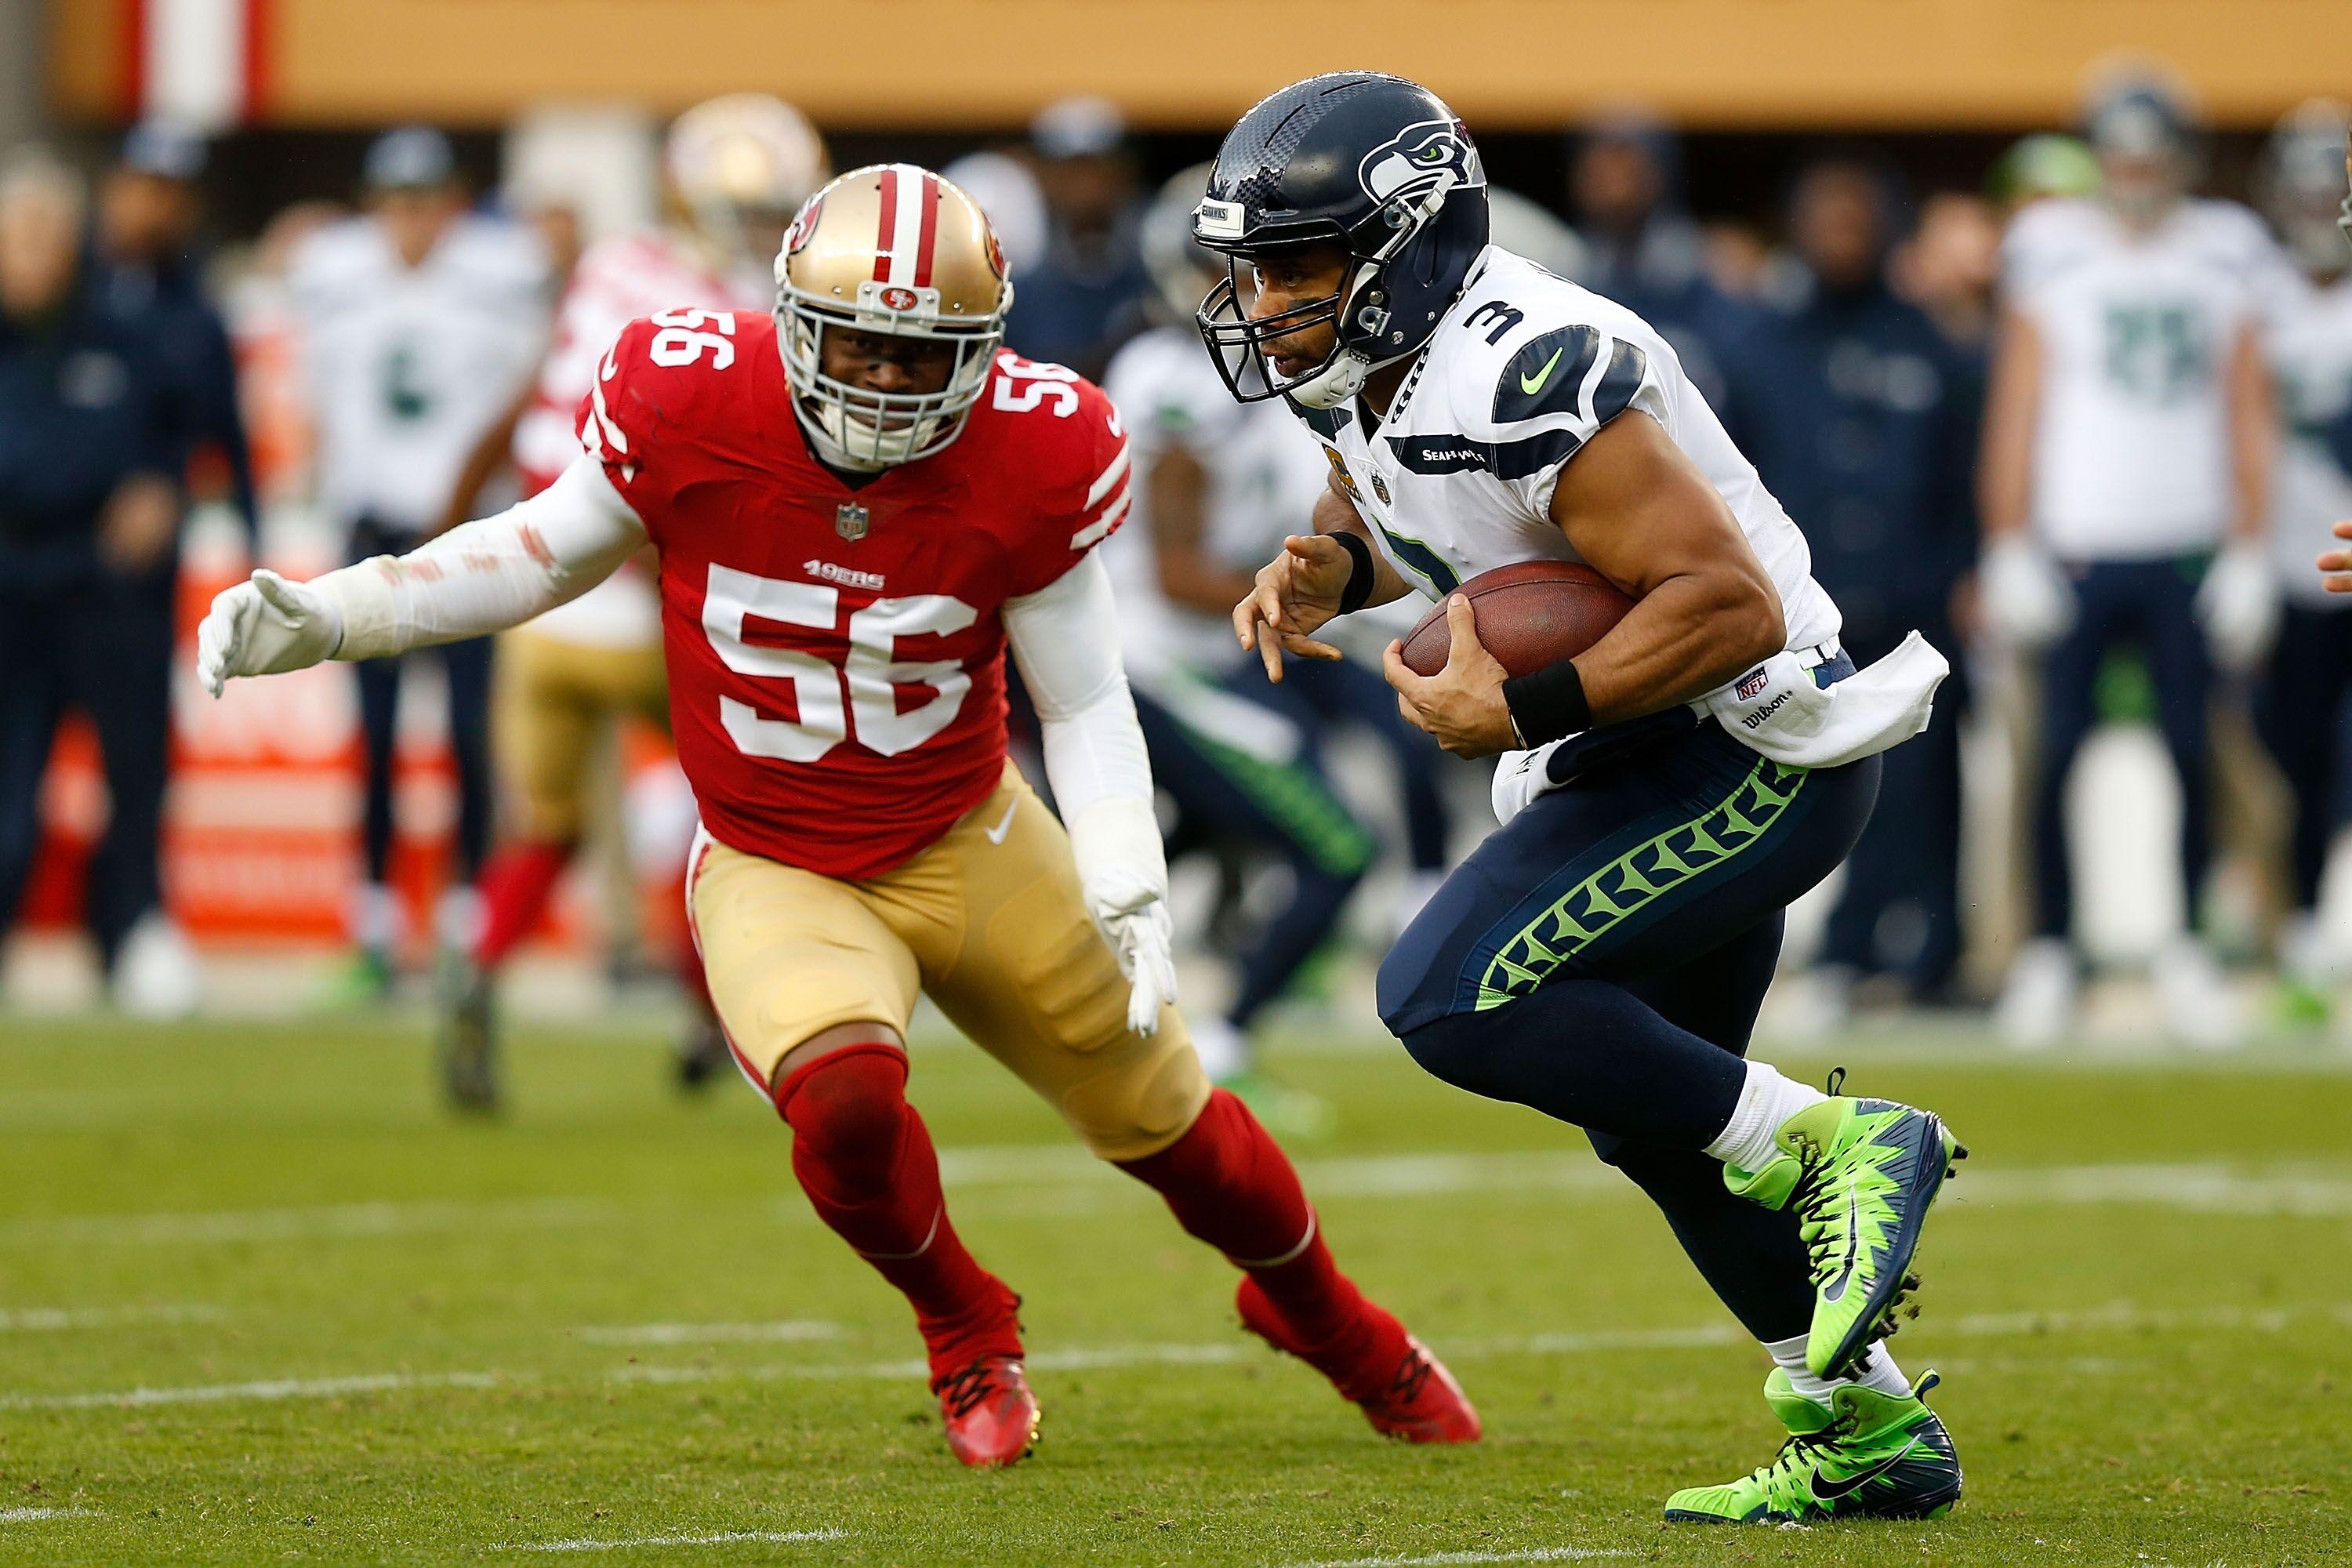 882720250-seattle-seahawks-v-san-francisco-49ers.jpg